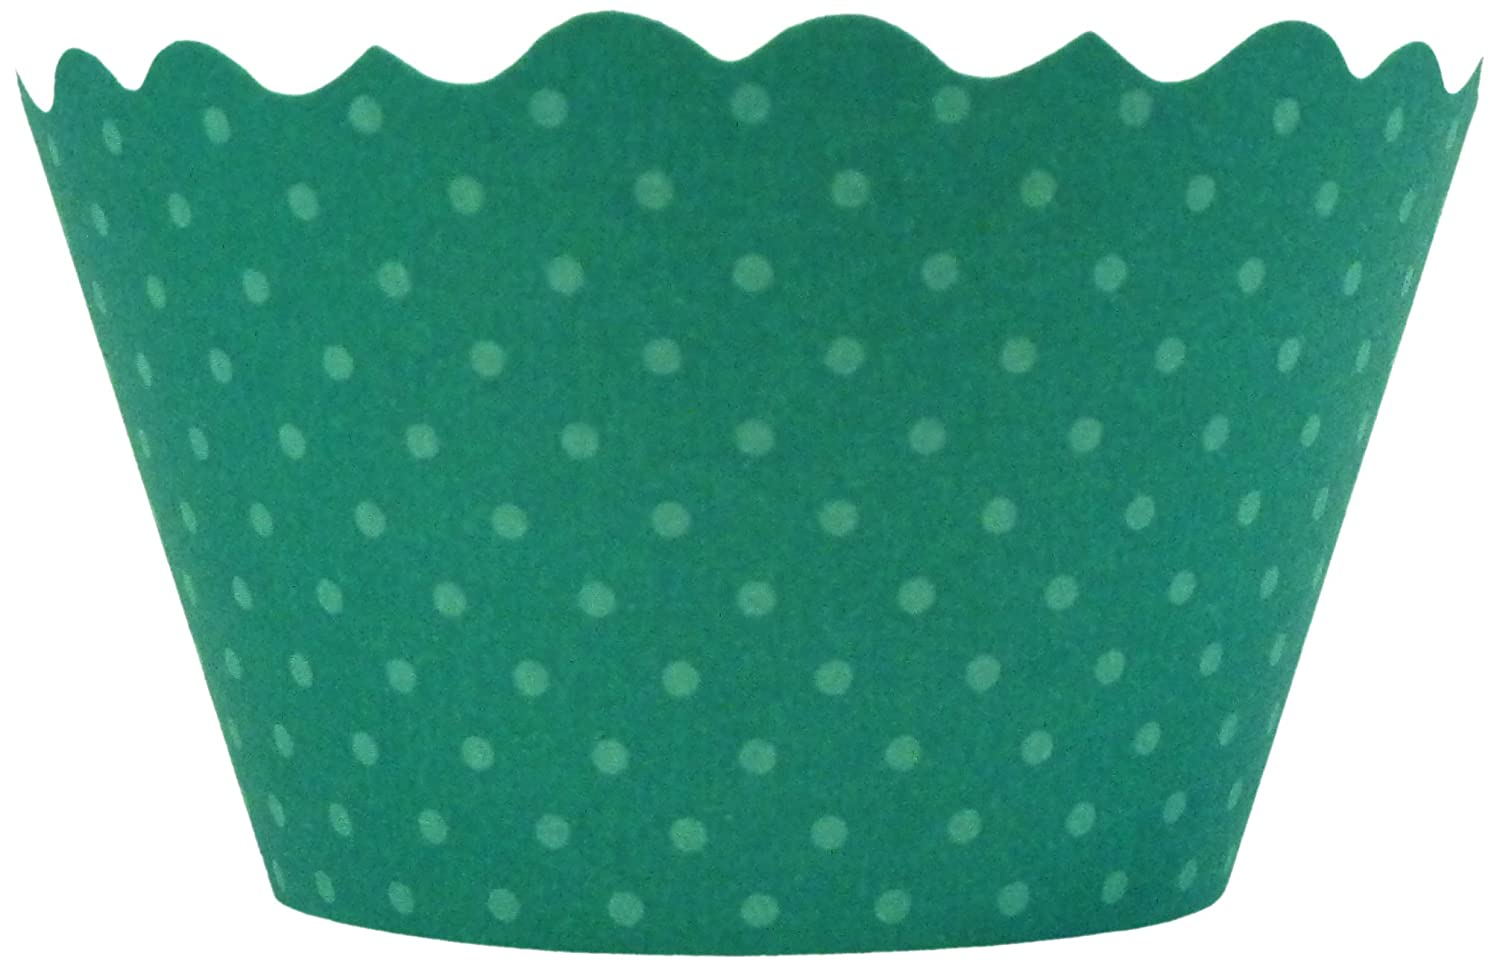 Bella Cupcake Couture Cupcake Wrappers, 12-Pack, Emerald Green 856863003135